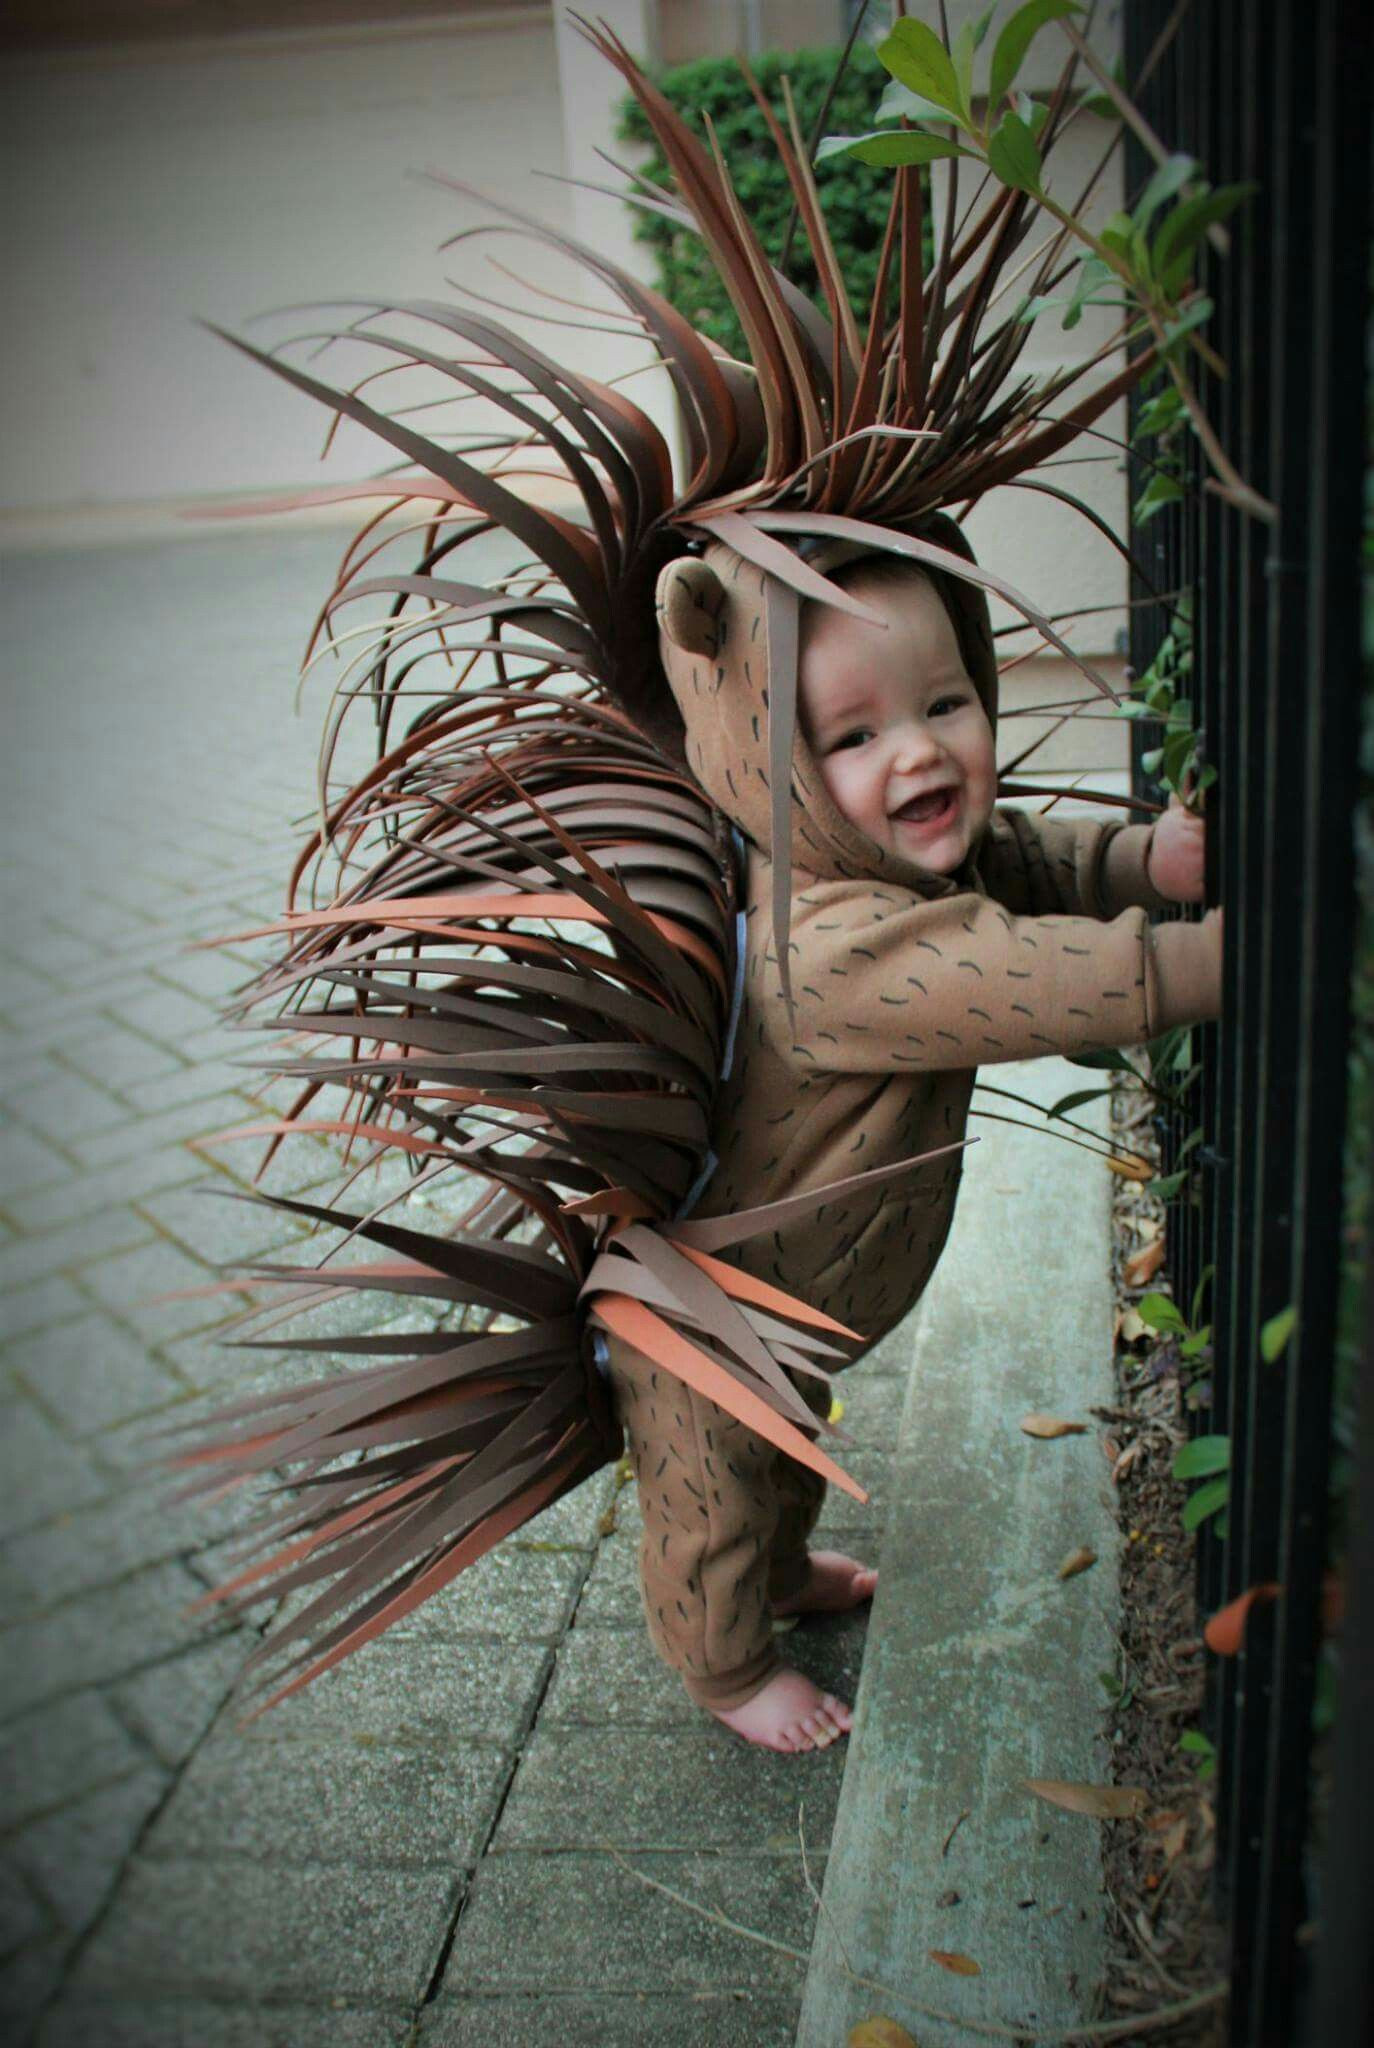 Best ideas about Animal Costume DIY . Save or Pin Porcupine halloween costume diy 2016 Now.